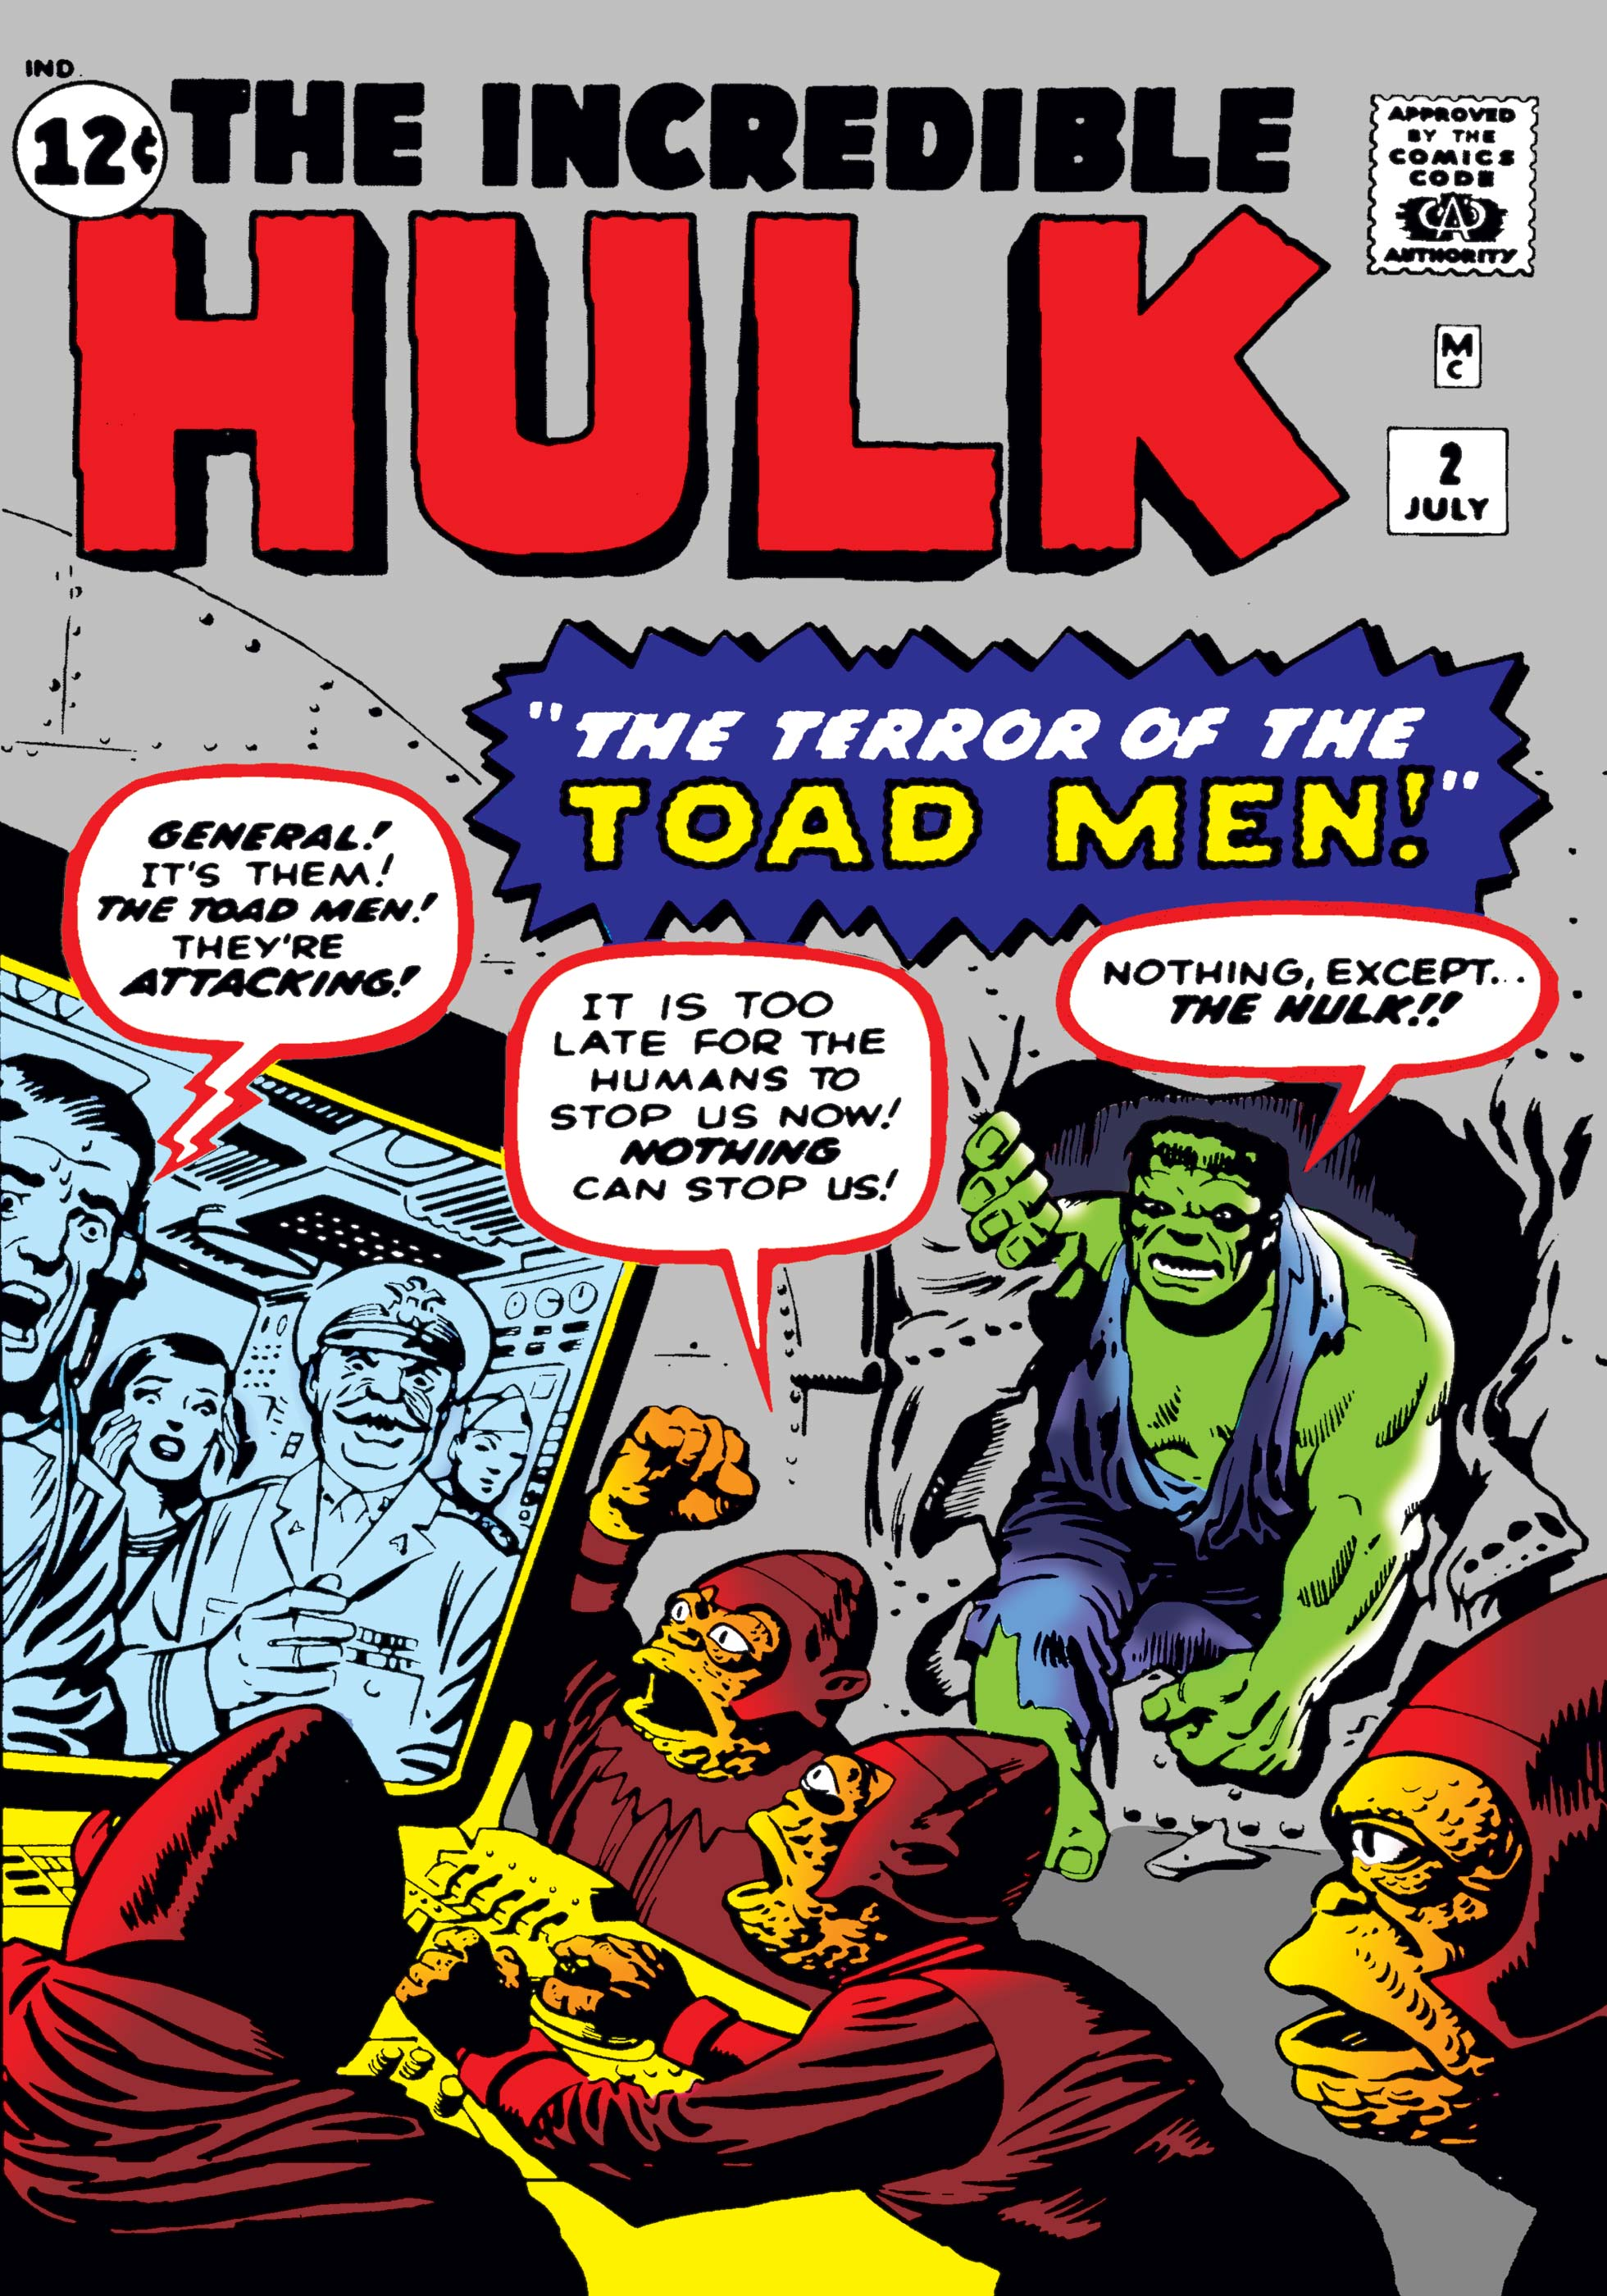 Incredible Hulk (1962) #2